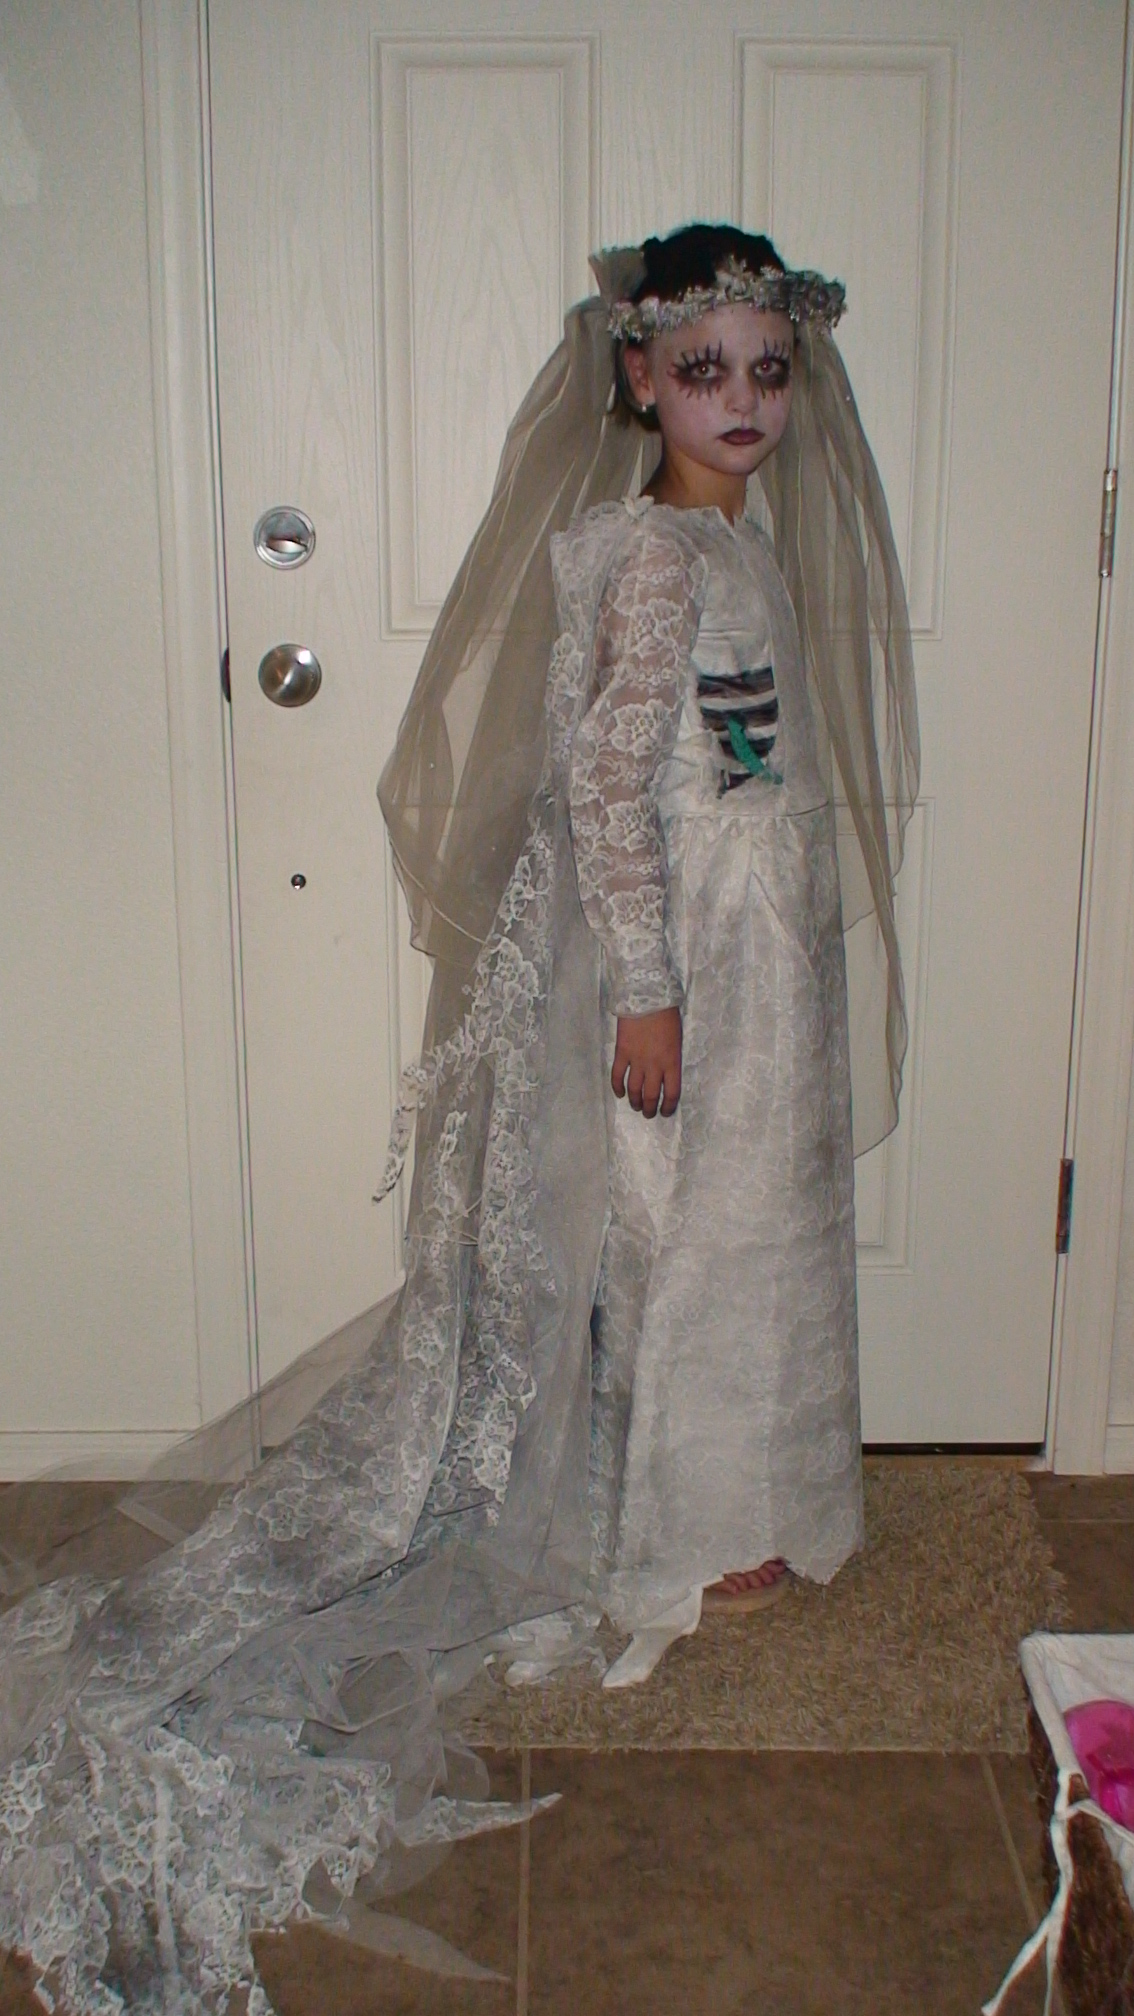 Corpse Bride Costume - Good Ideas and Tips